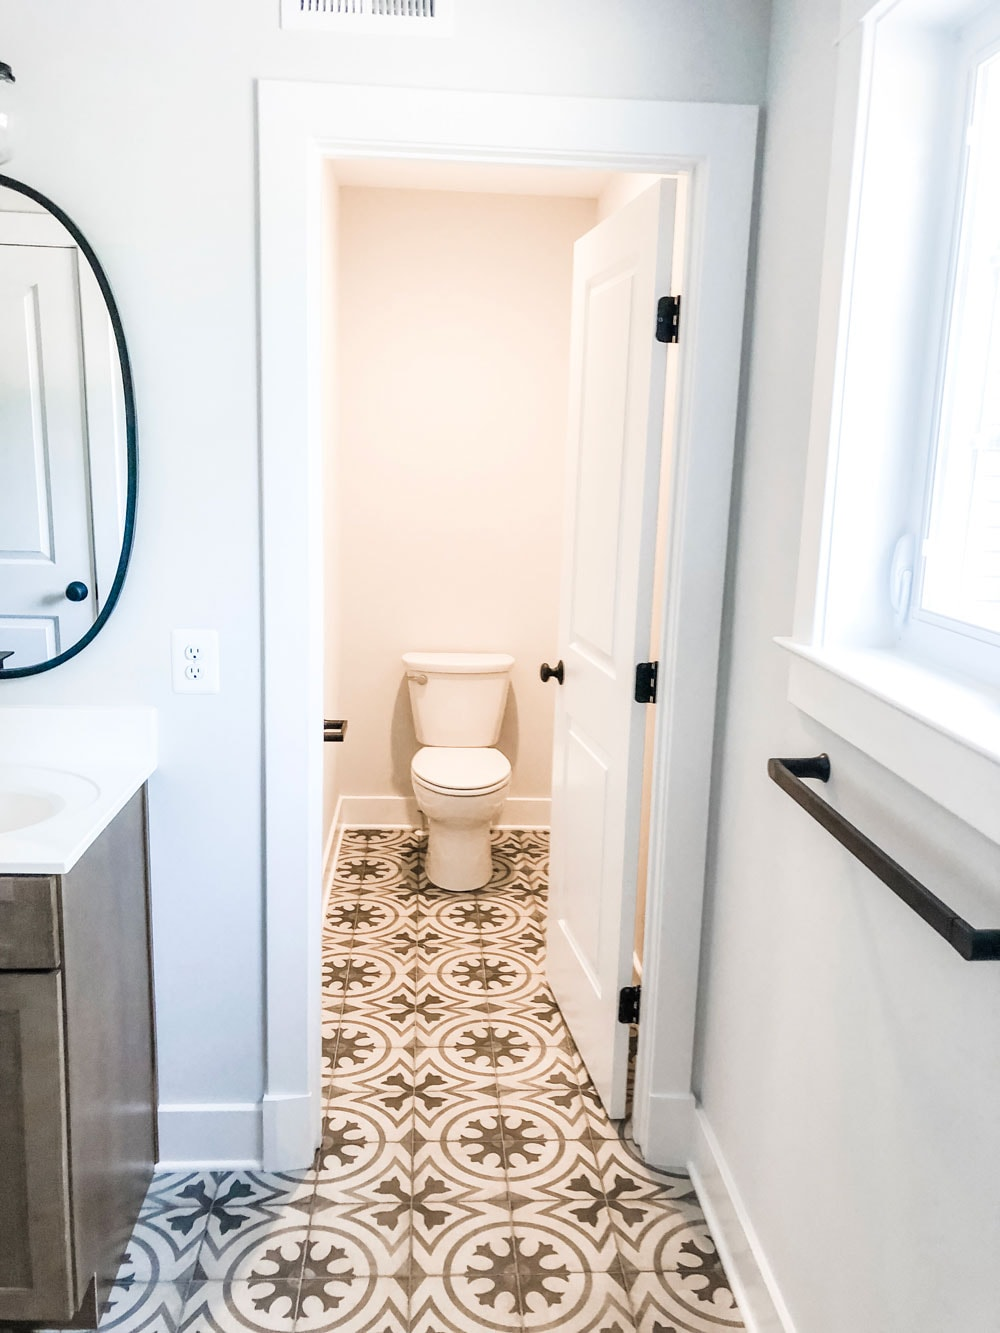 Custom home tour photos. This photo shows a toilet in a separate water closet. The toilet is white and the flooring has a gray and white patterned tile.